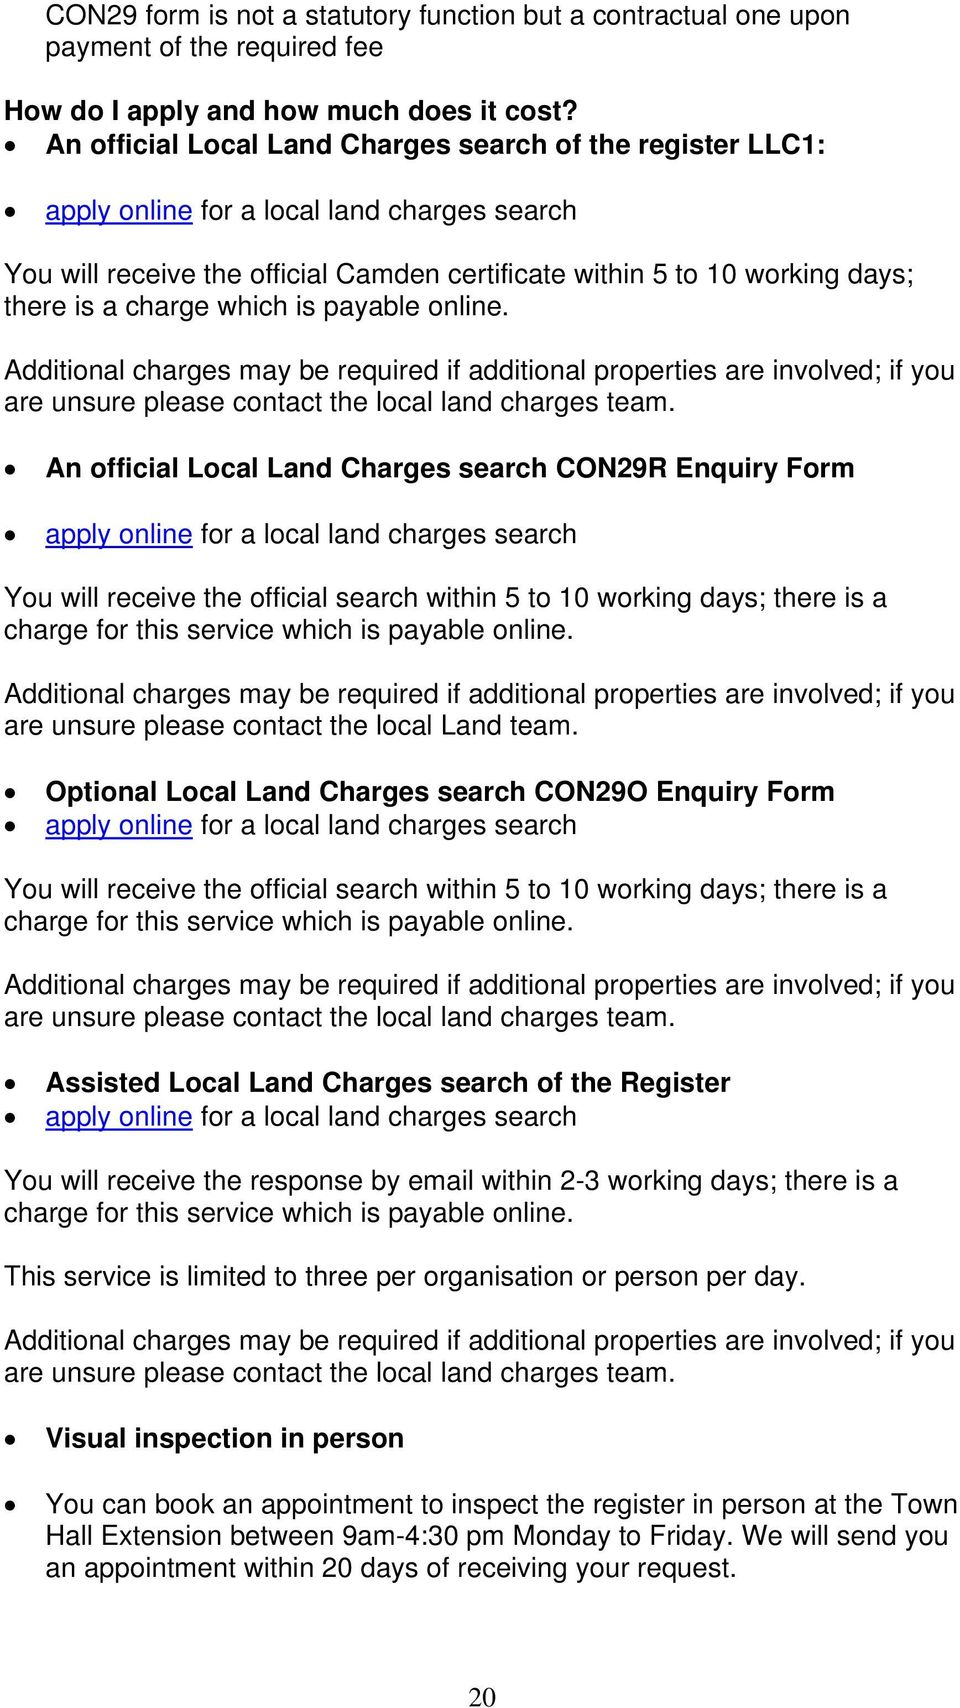 charge which is payable online. Additional charges may be required if additional properties are involved; if you are unsure please contact the local land charges team.